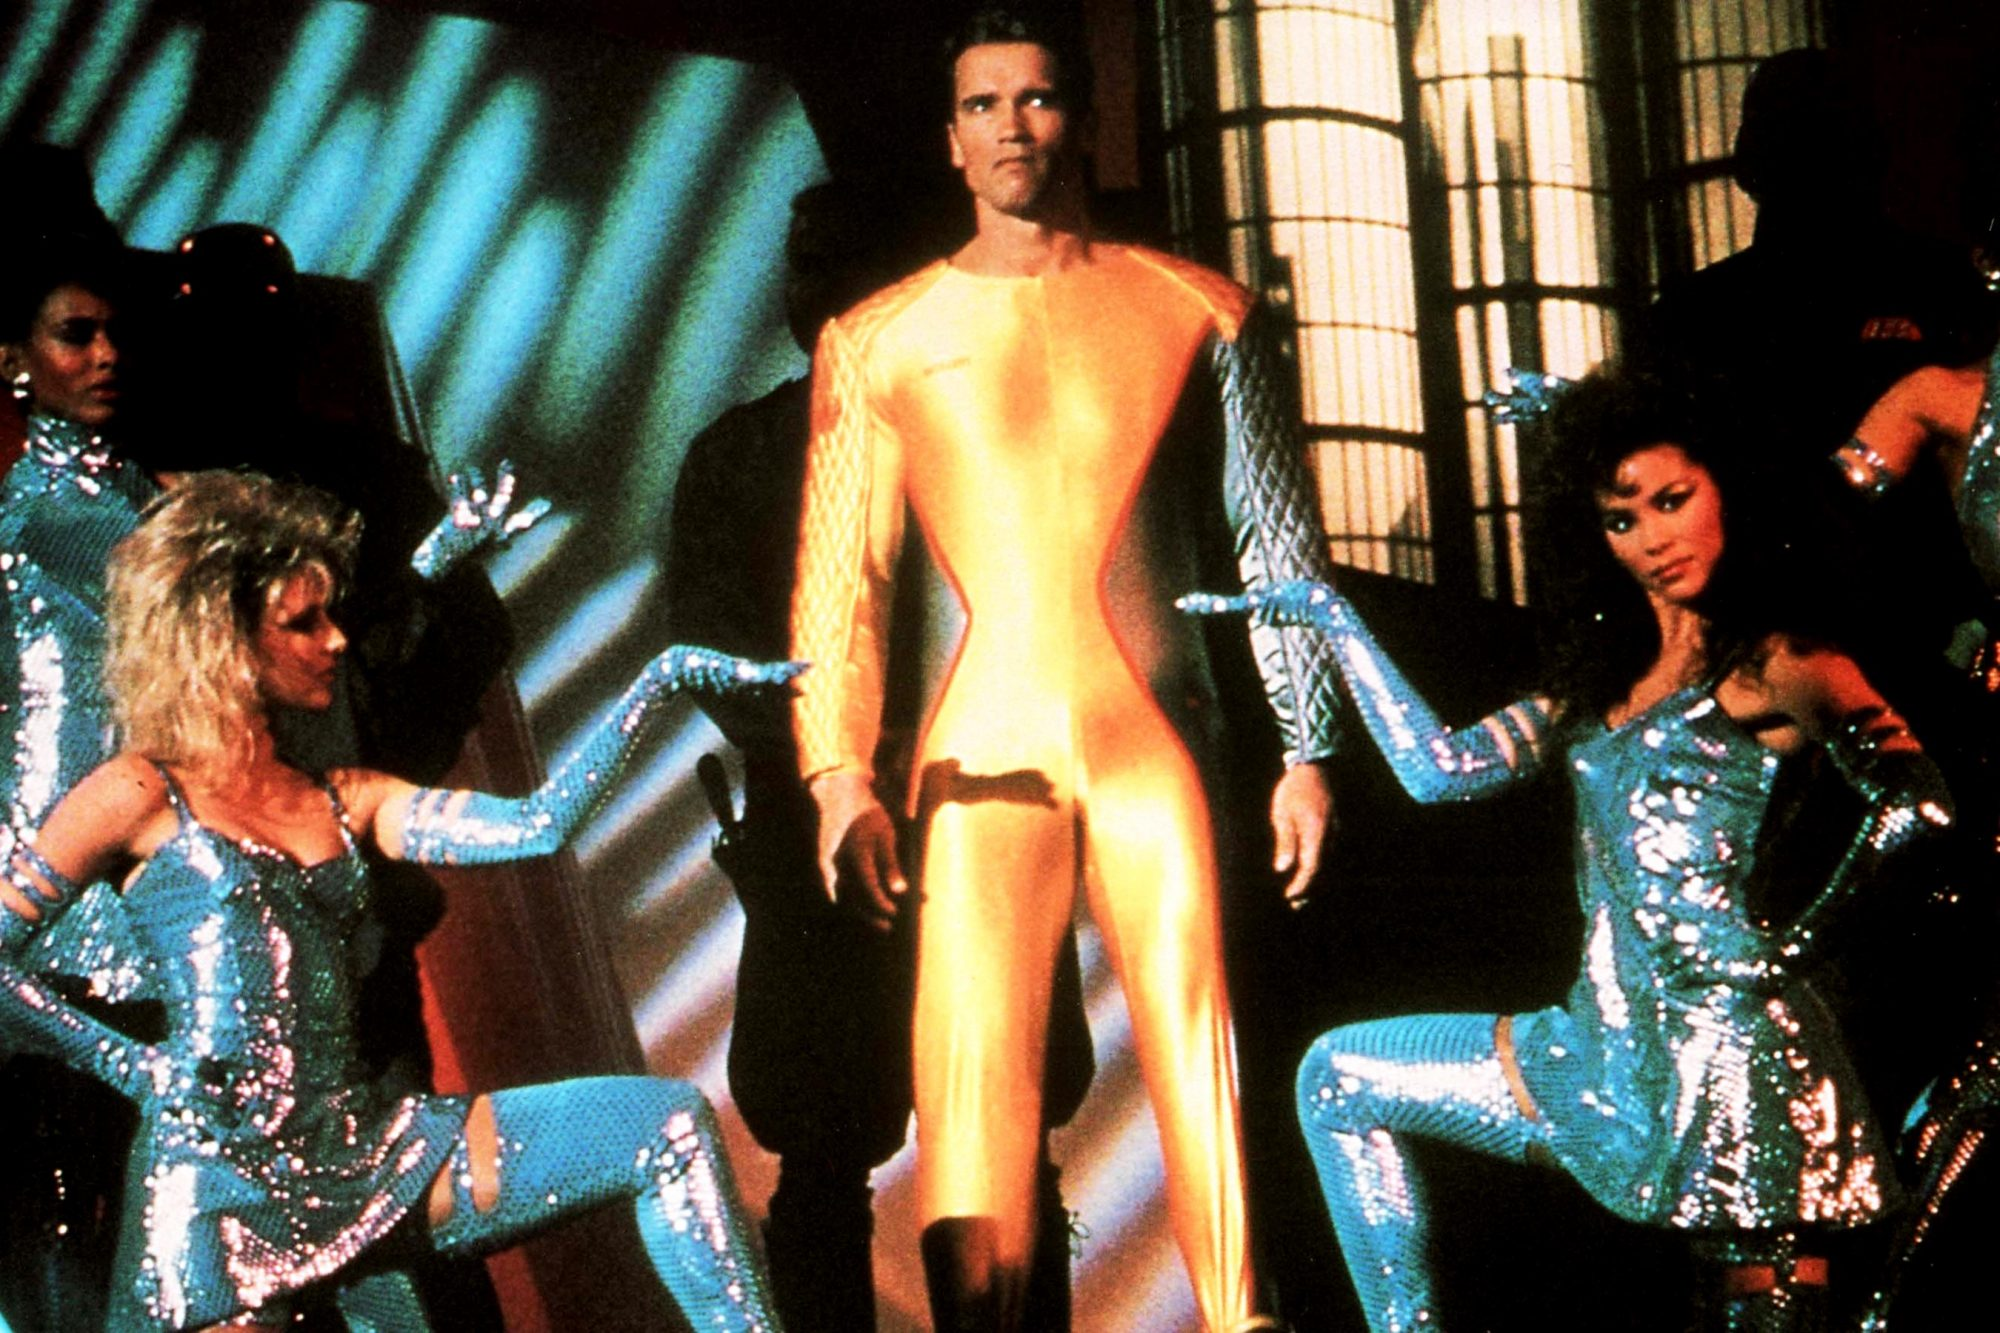 BEST: 9. The Running Man (1987)